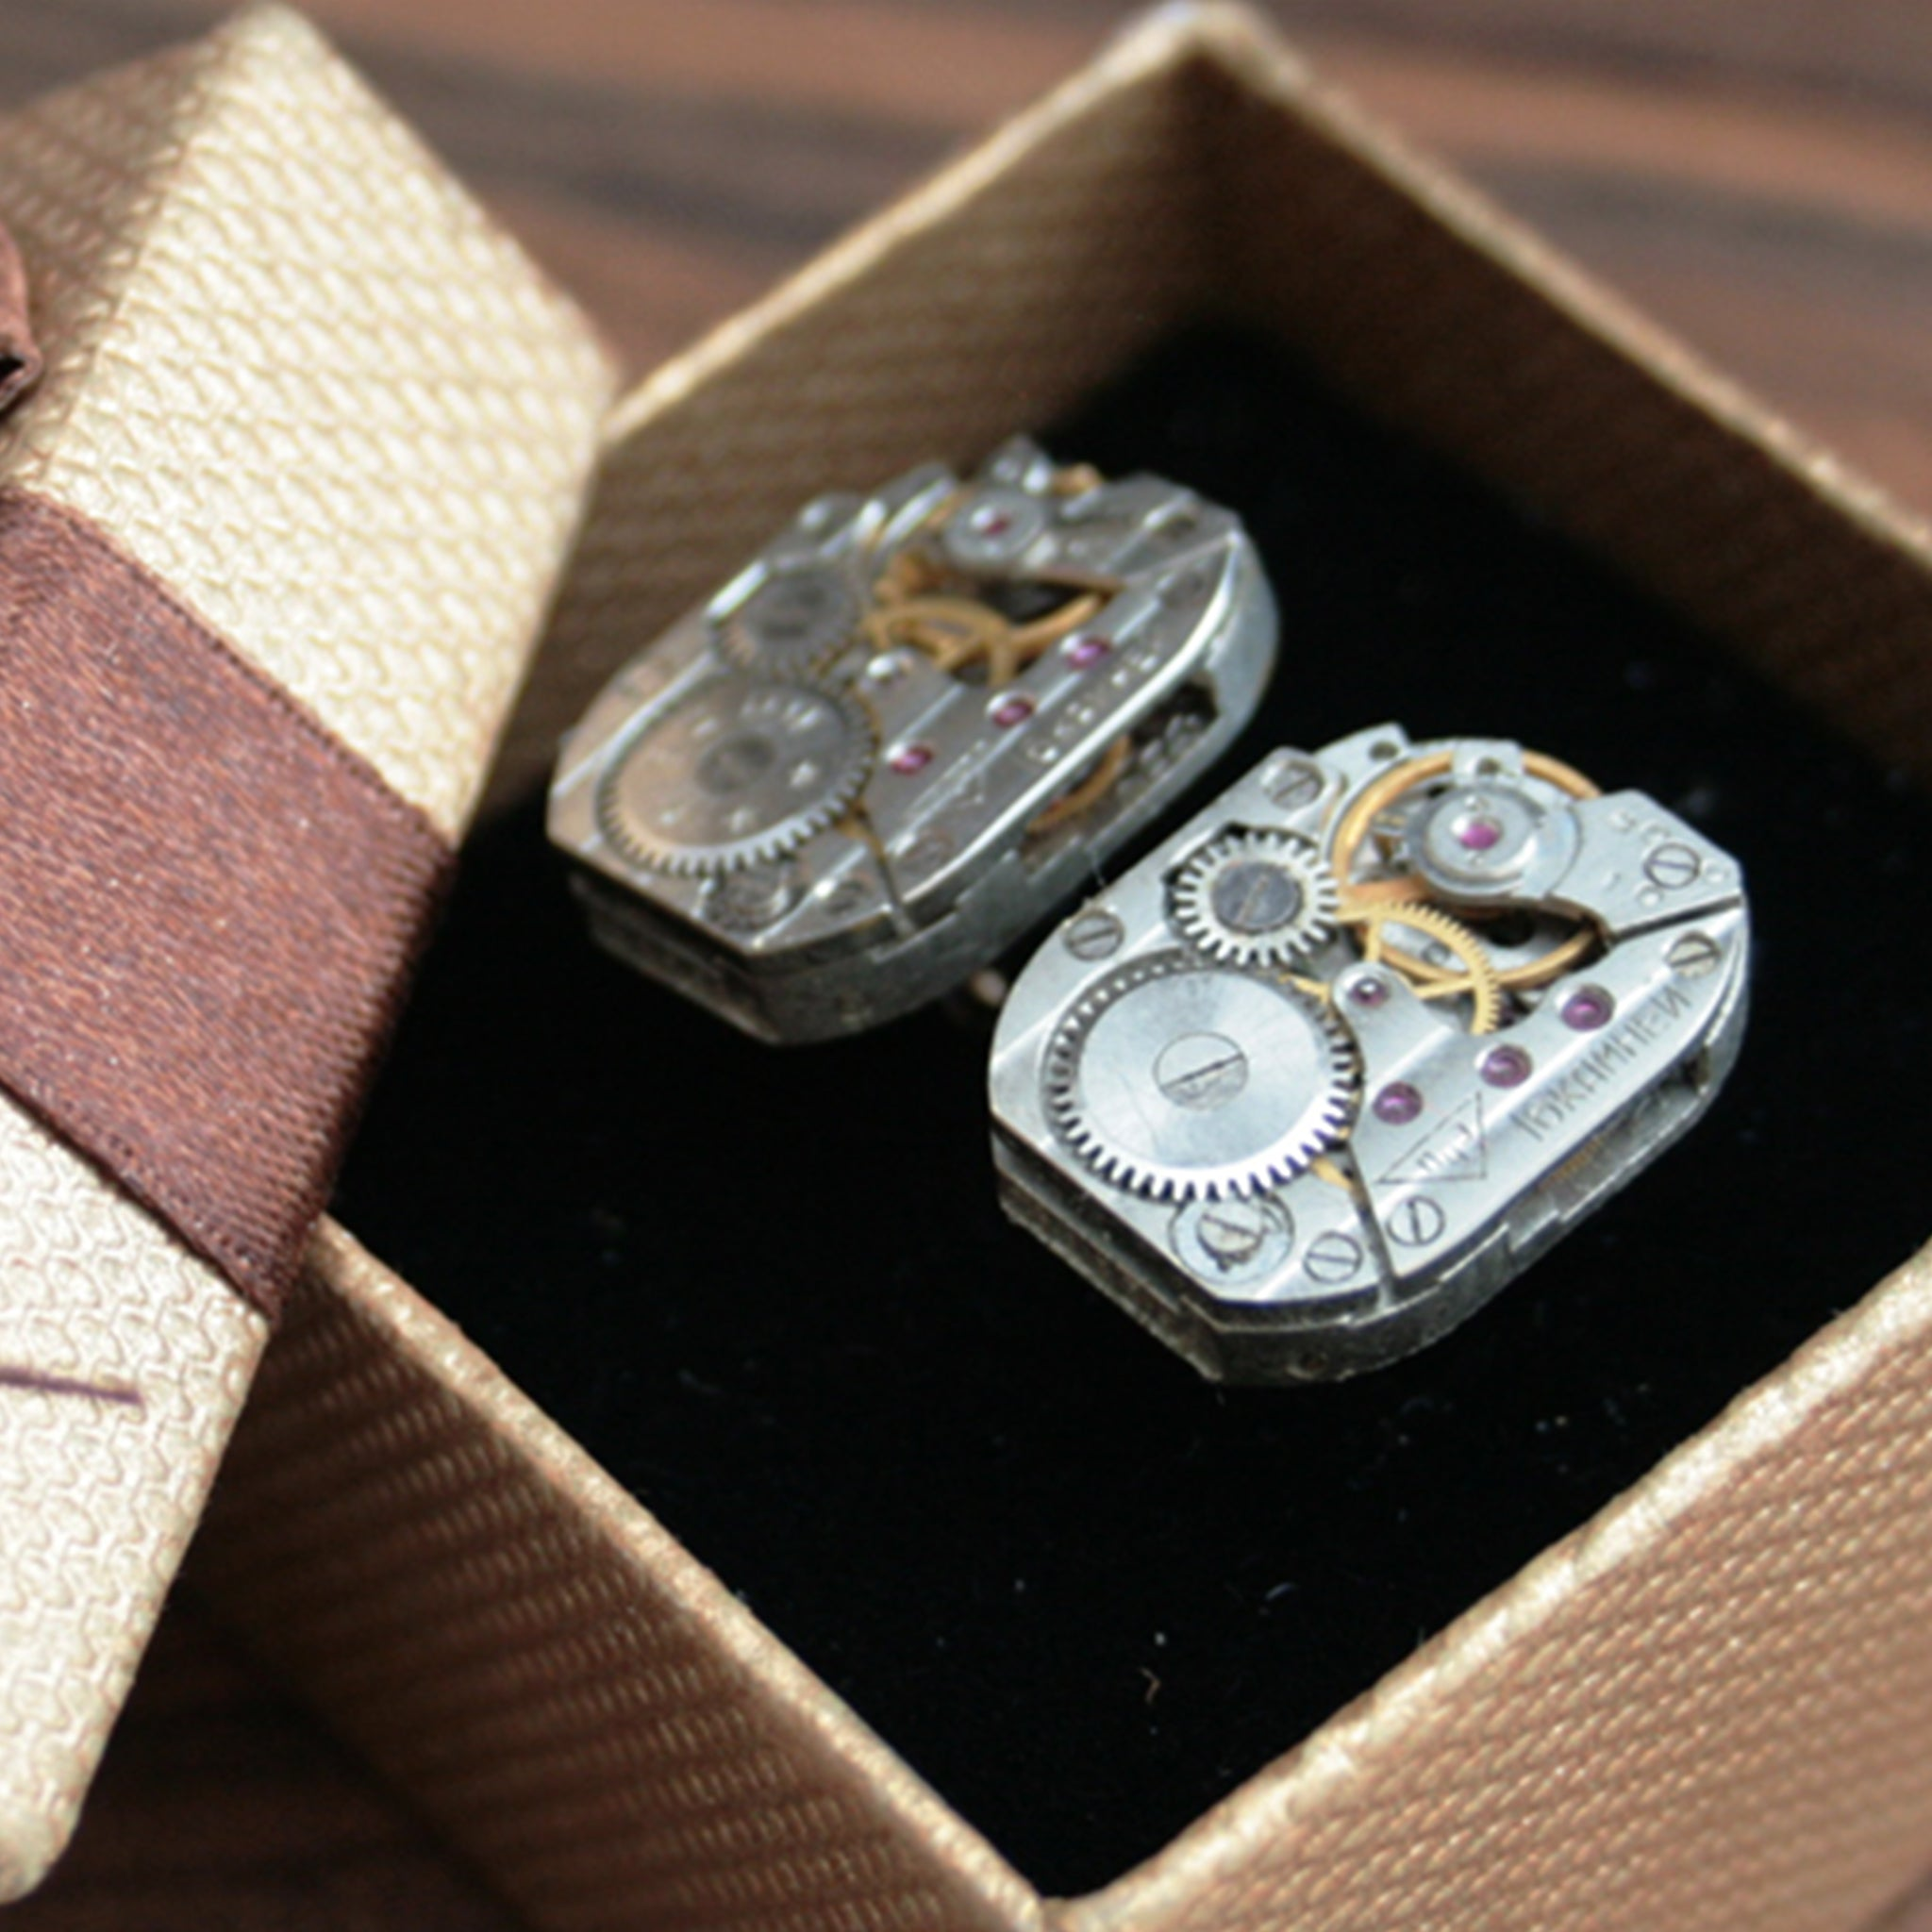 steampunk cufflinks for men featuring antique watch movements in lovely brown box